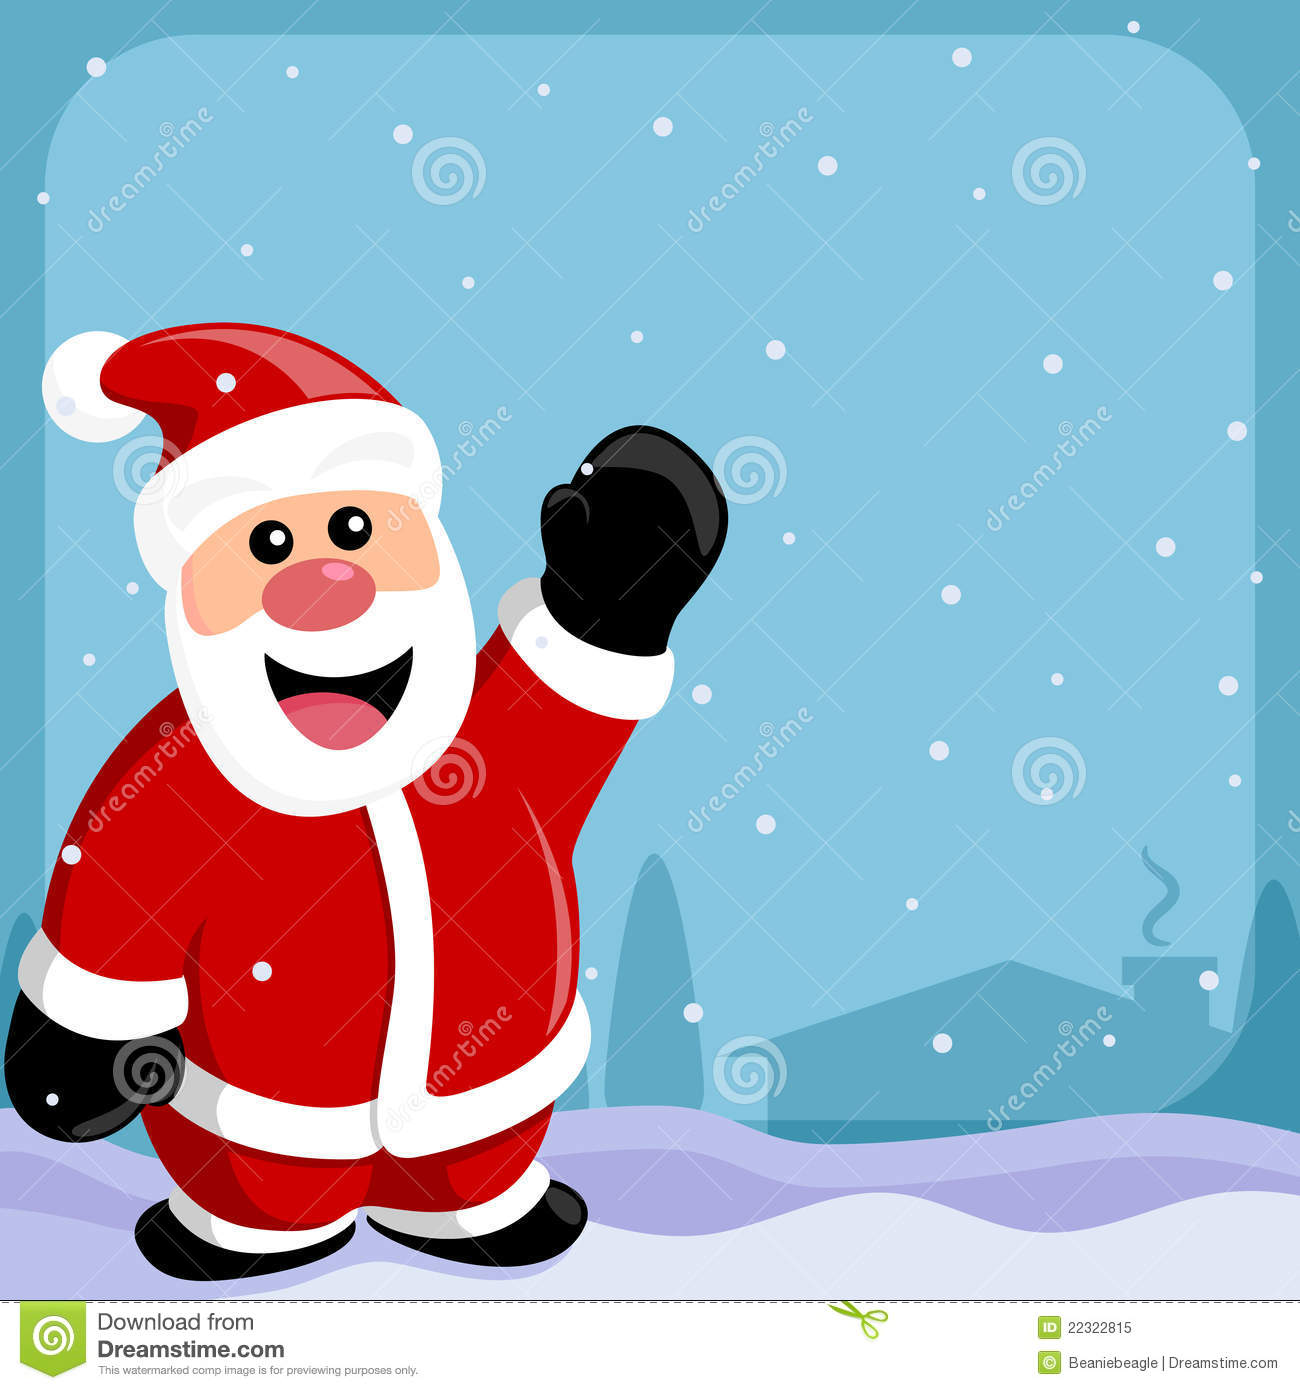 Father Christmas Images Free.Santa Claus Border Stock Vector Illustration Of Cartoon